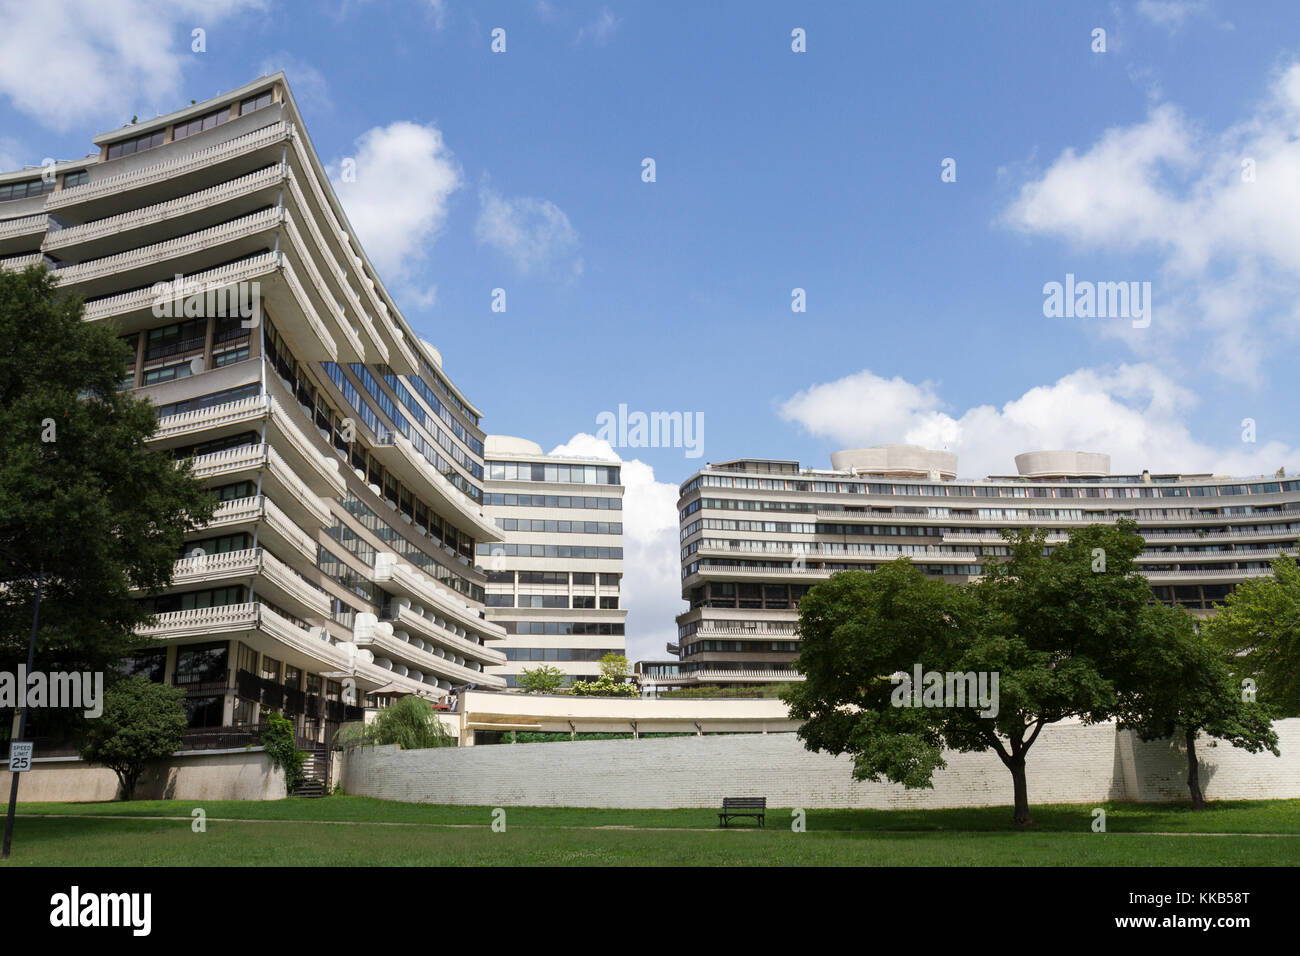 Part of the Watergate Complex, site of the Richard Nixon Watergate scandal, Foggy Bottom, Washington DC, United - Stock Image